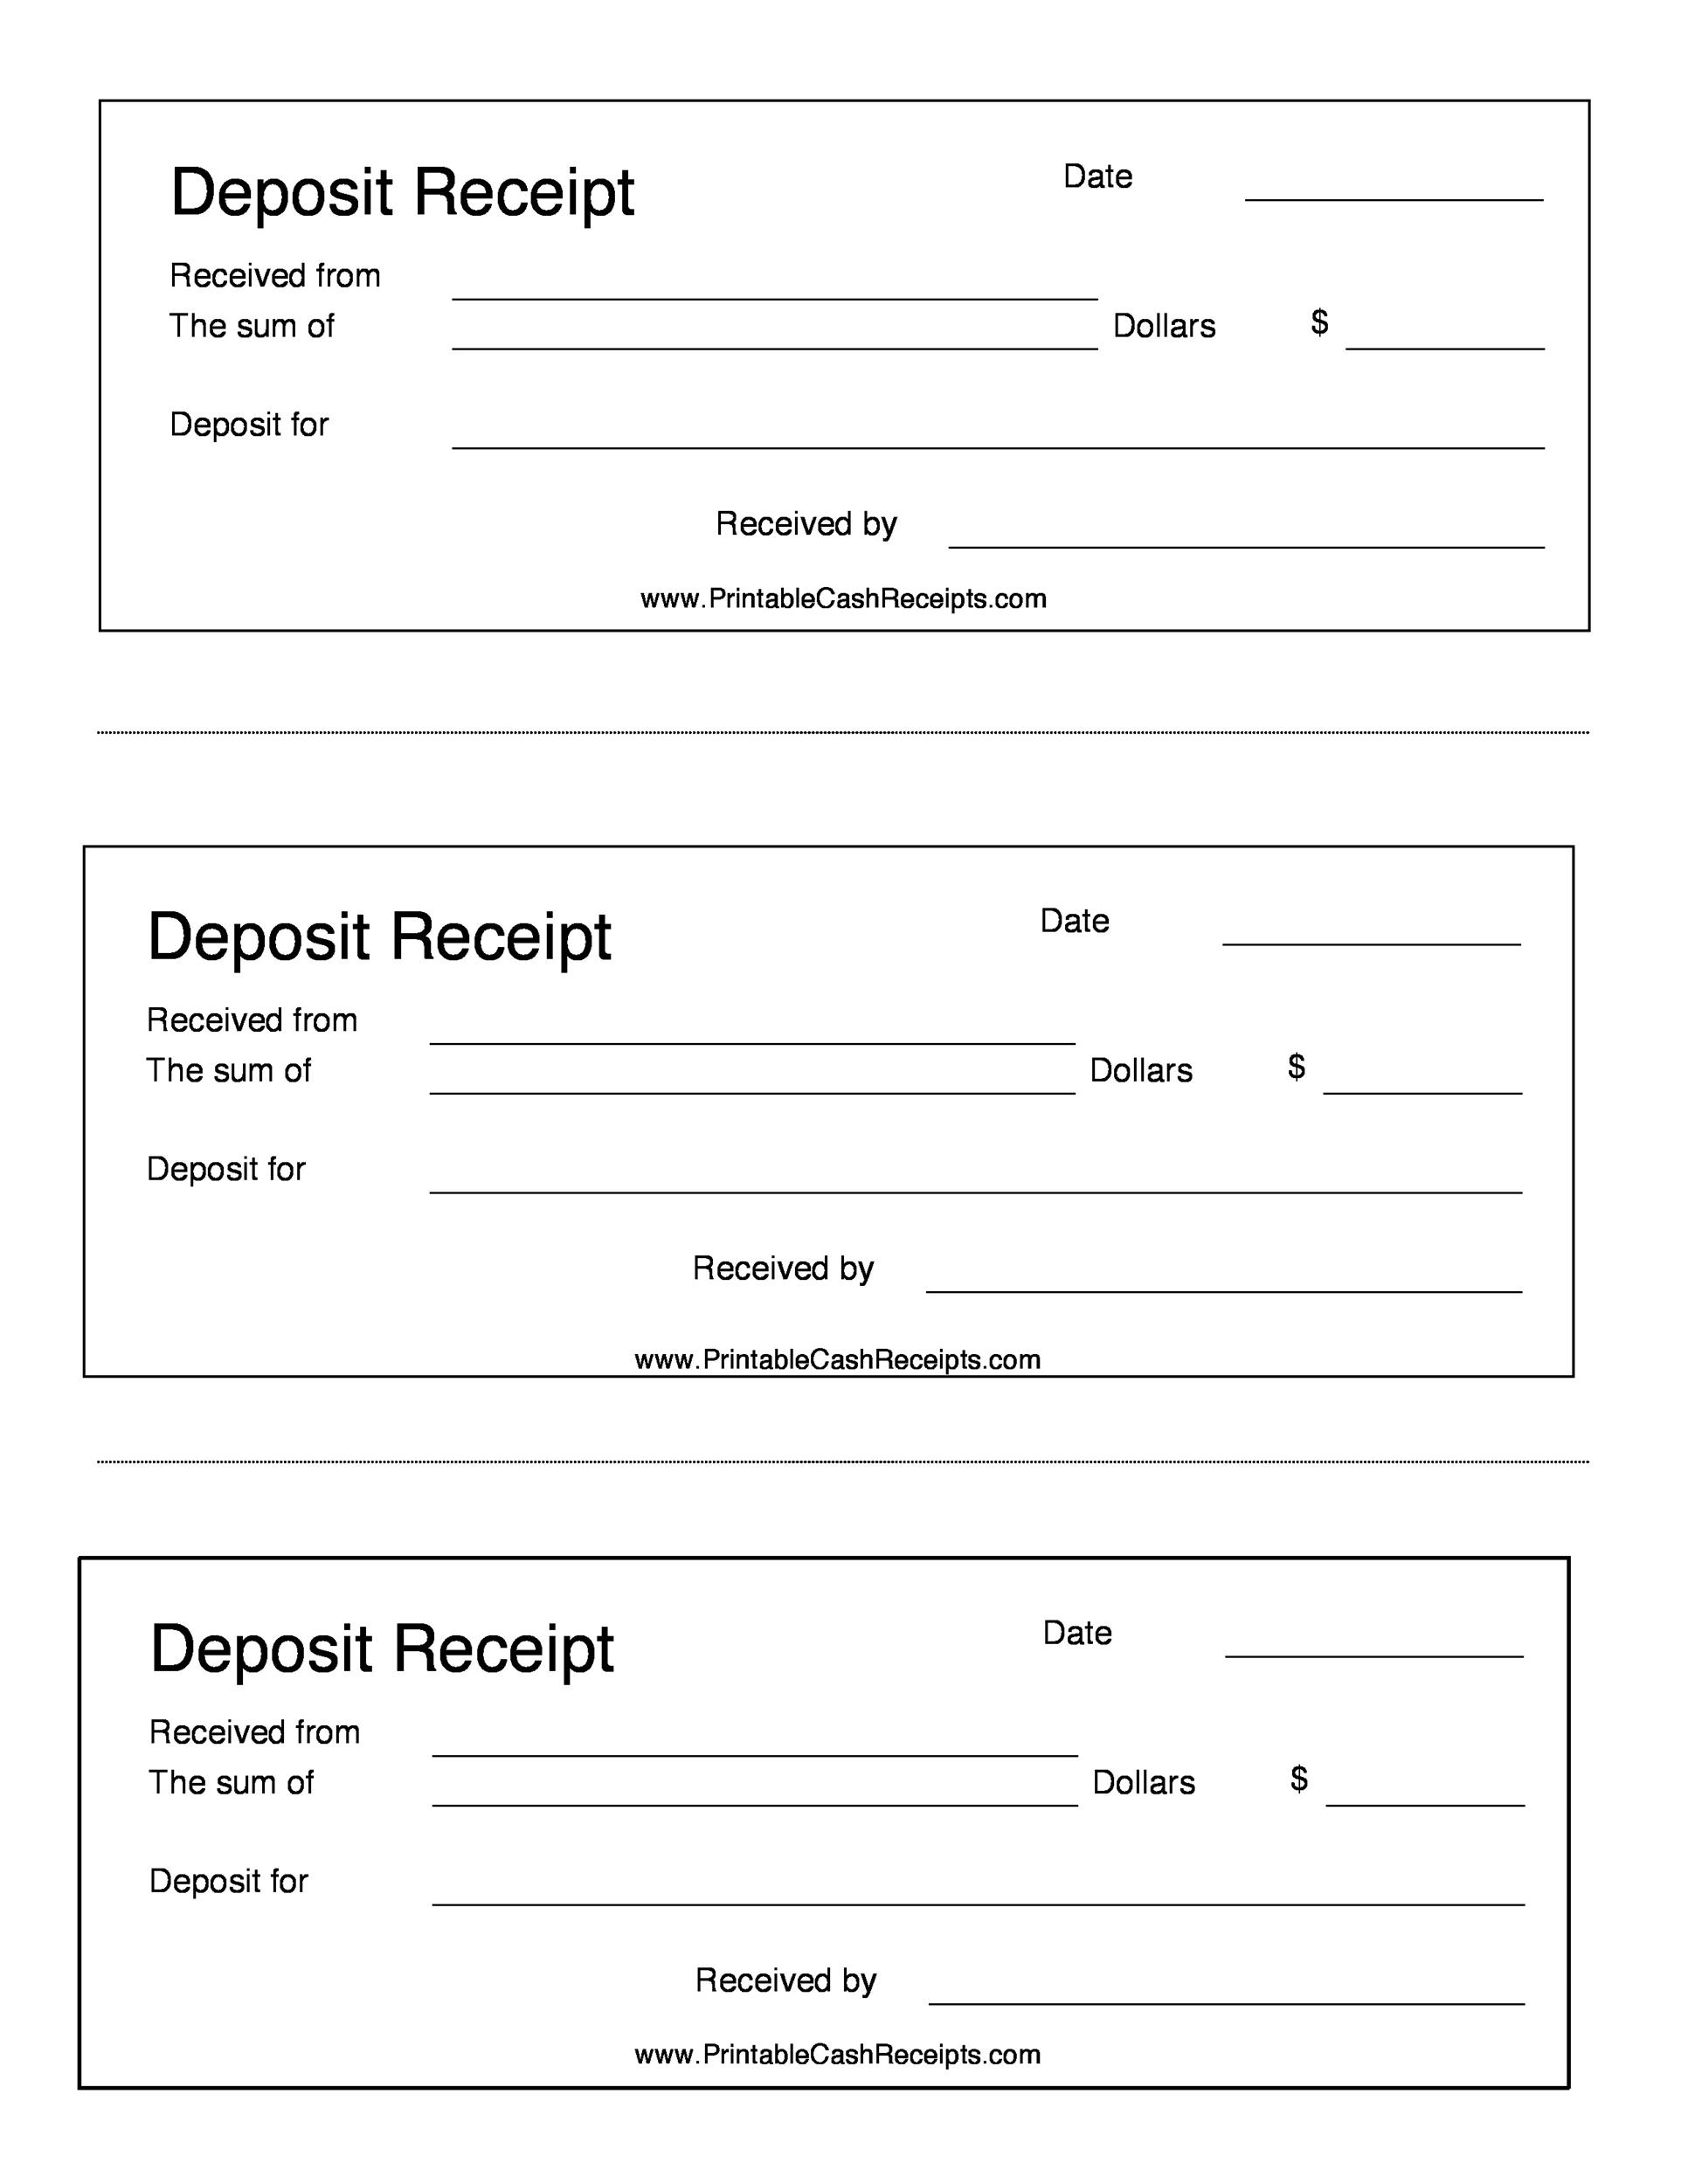 Printable Deposit Receipt  Free Template For Receipt Of Payment